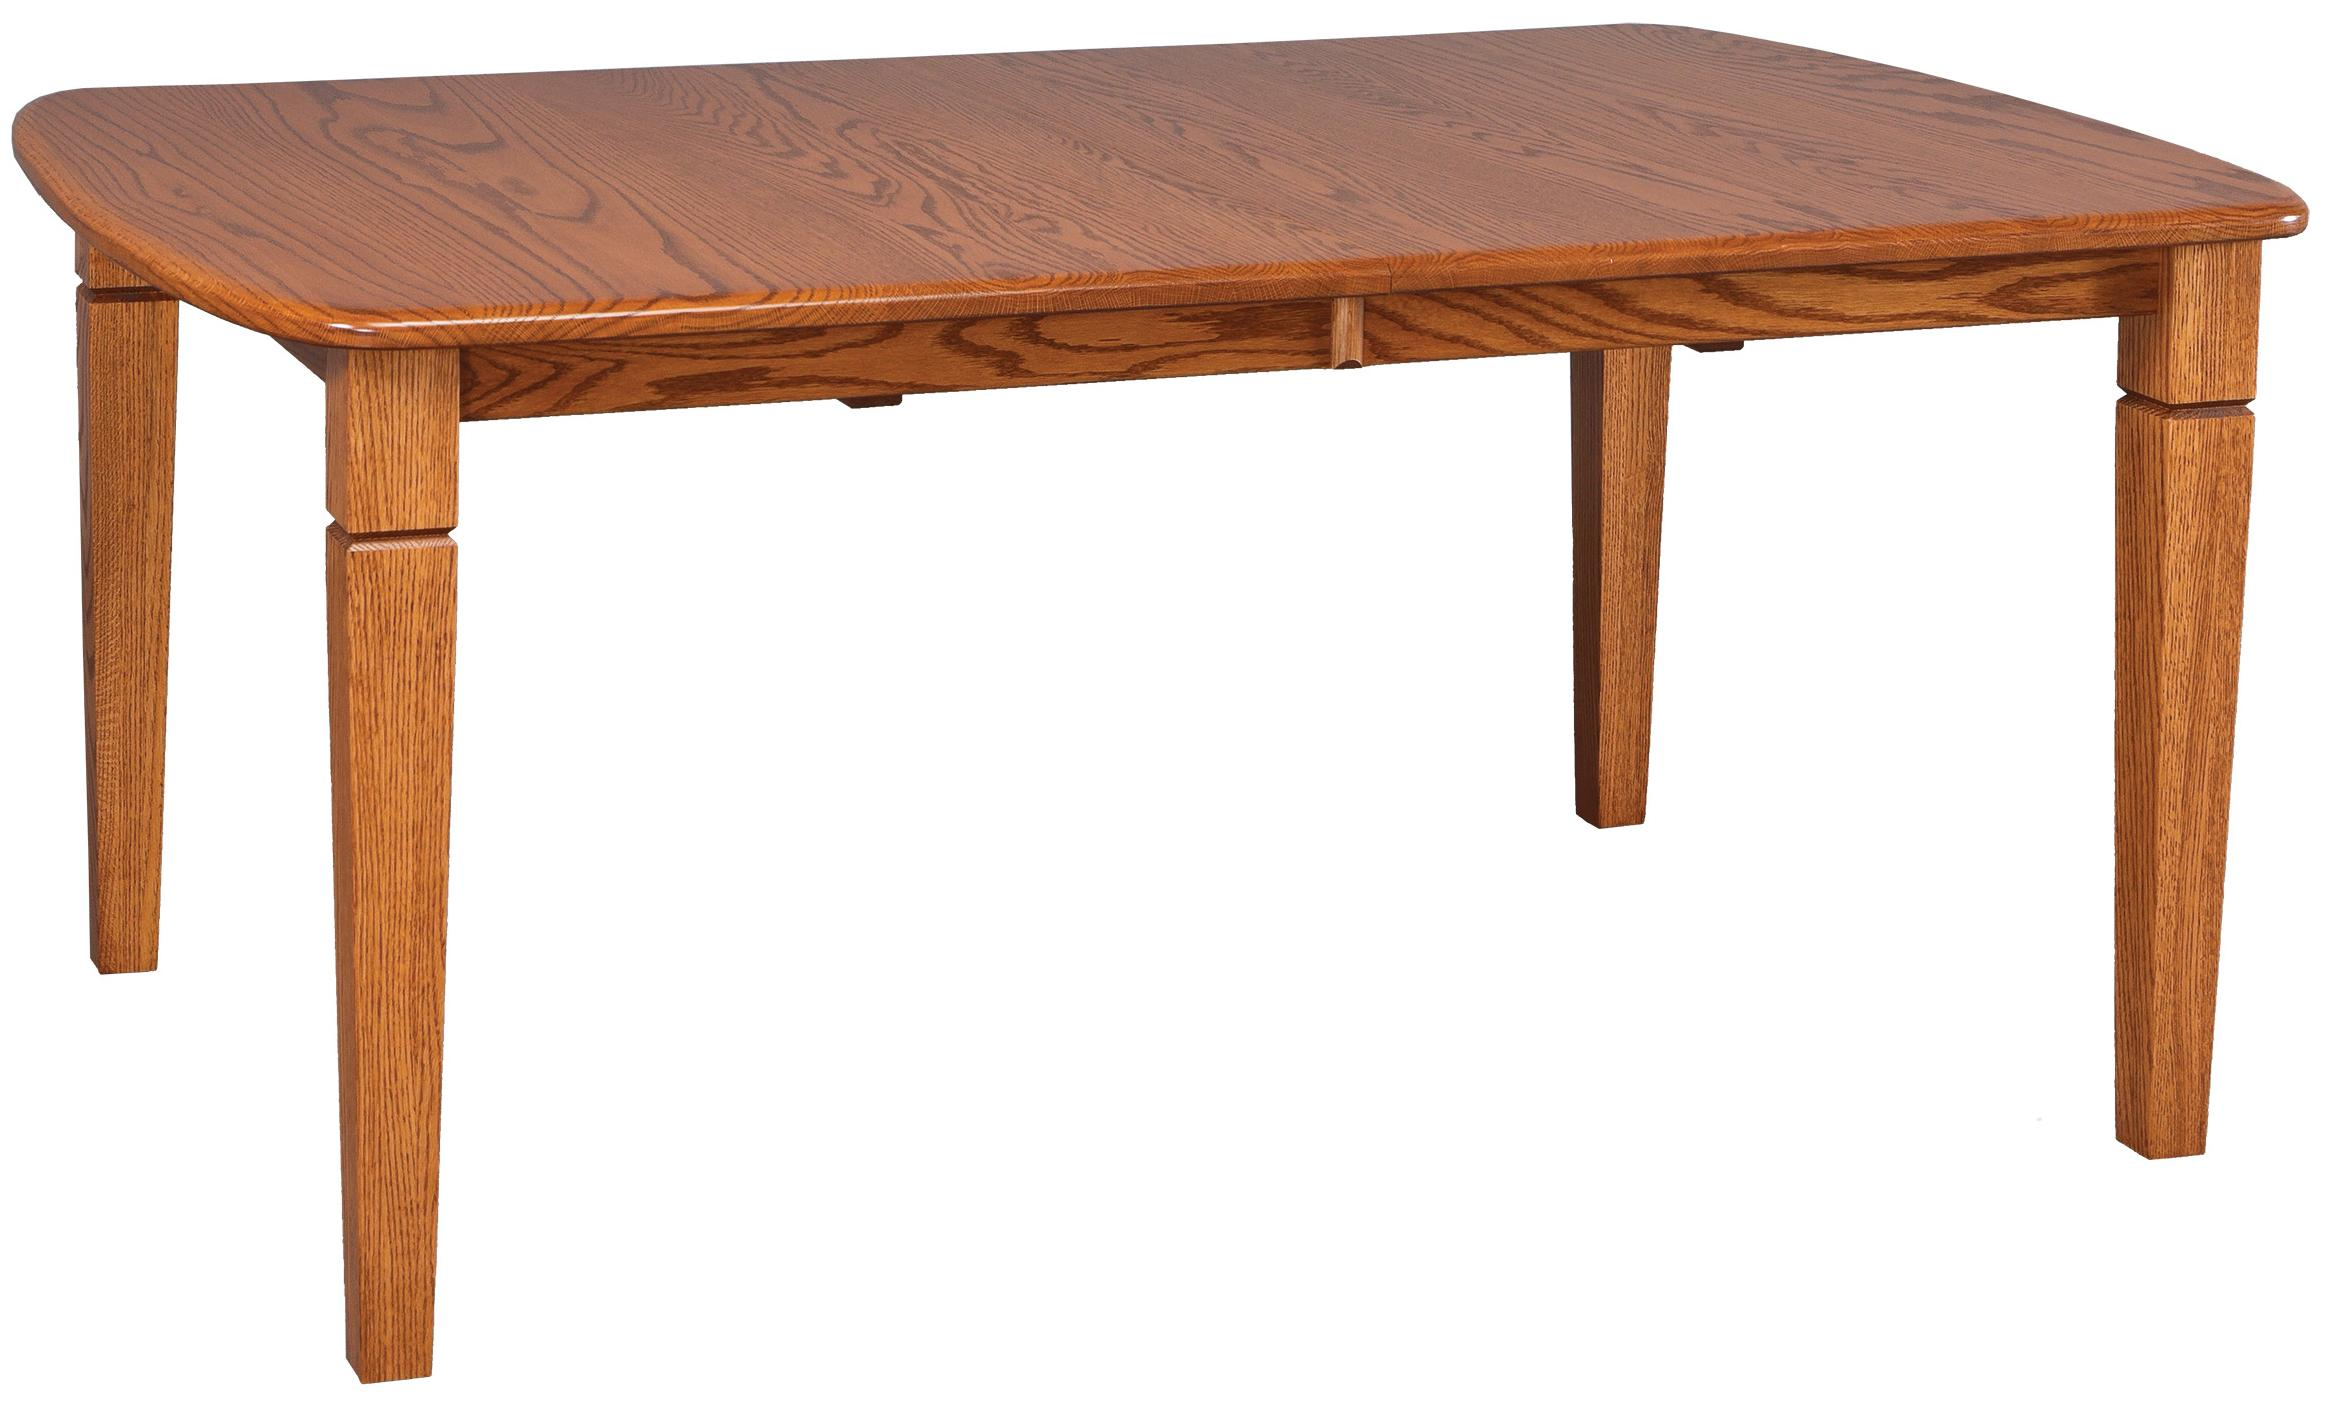 Solid Wood Rectangular Table by Daniel s Amish